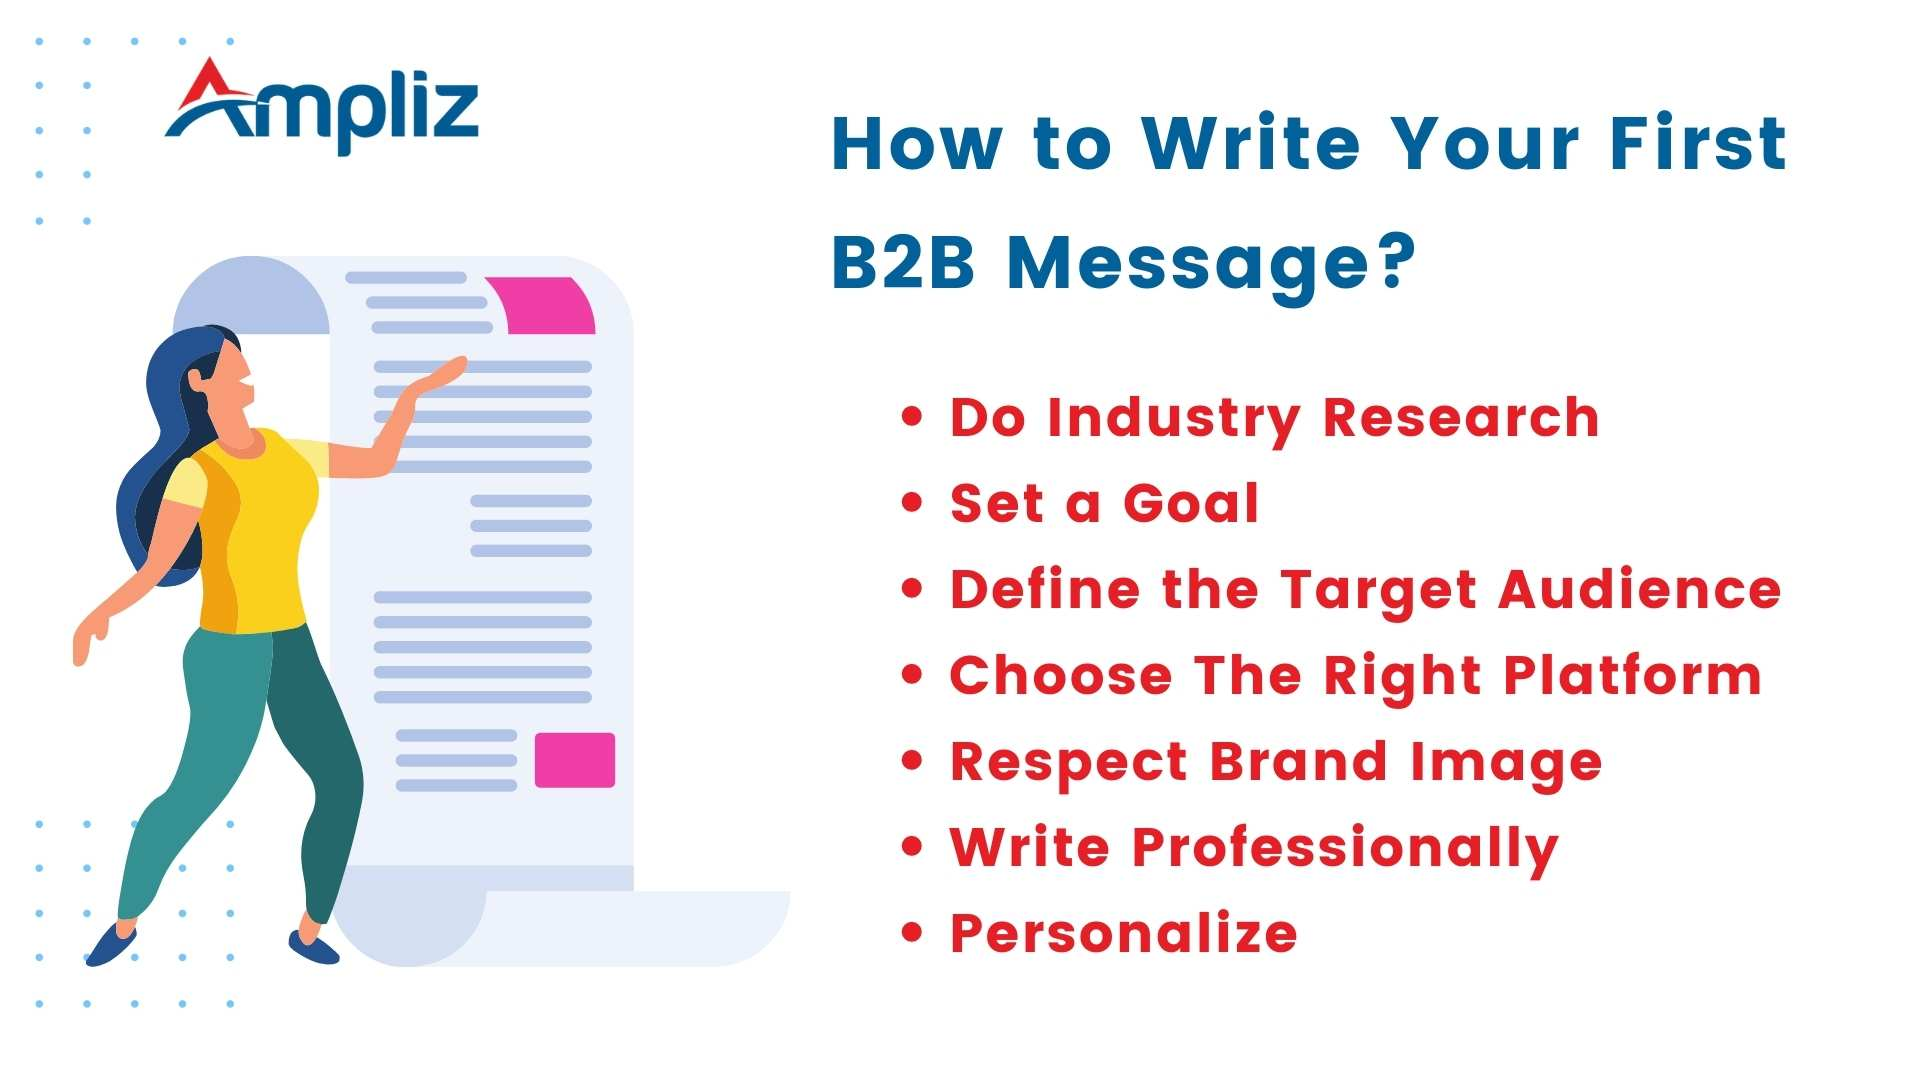 How to Write Your First B2B Message